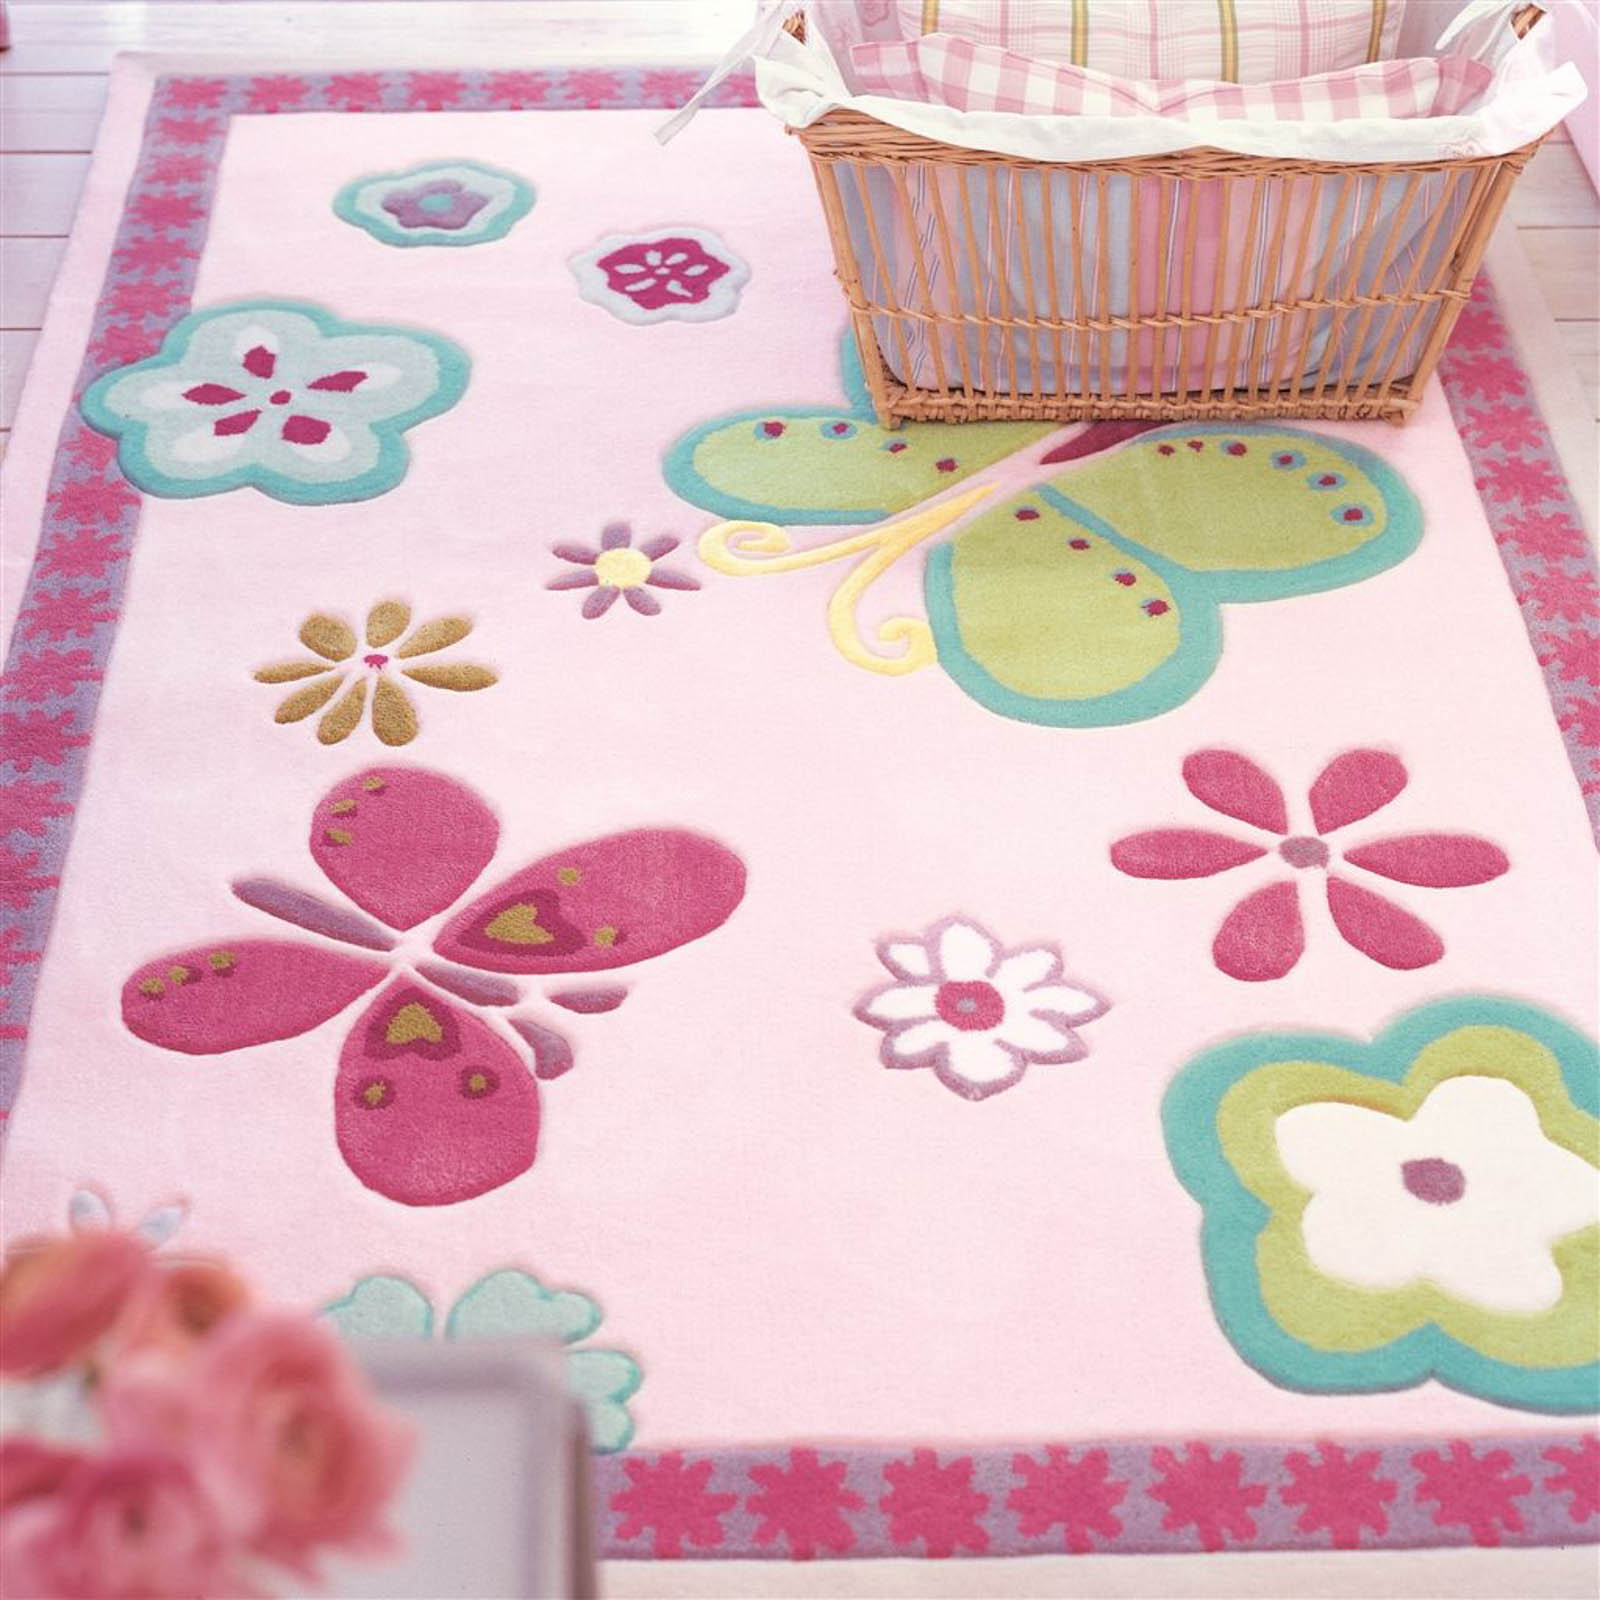 Elgin Flower Rug by Designers Guild